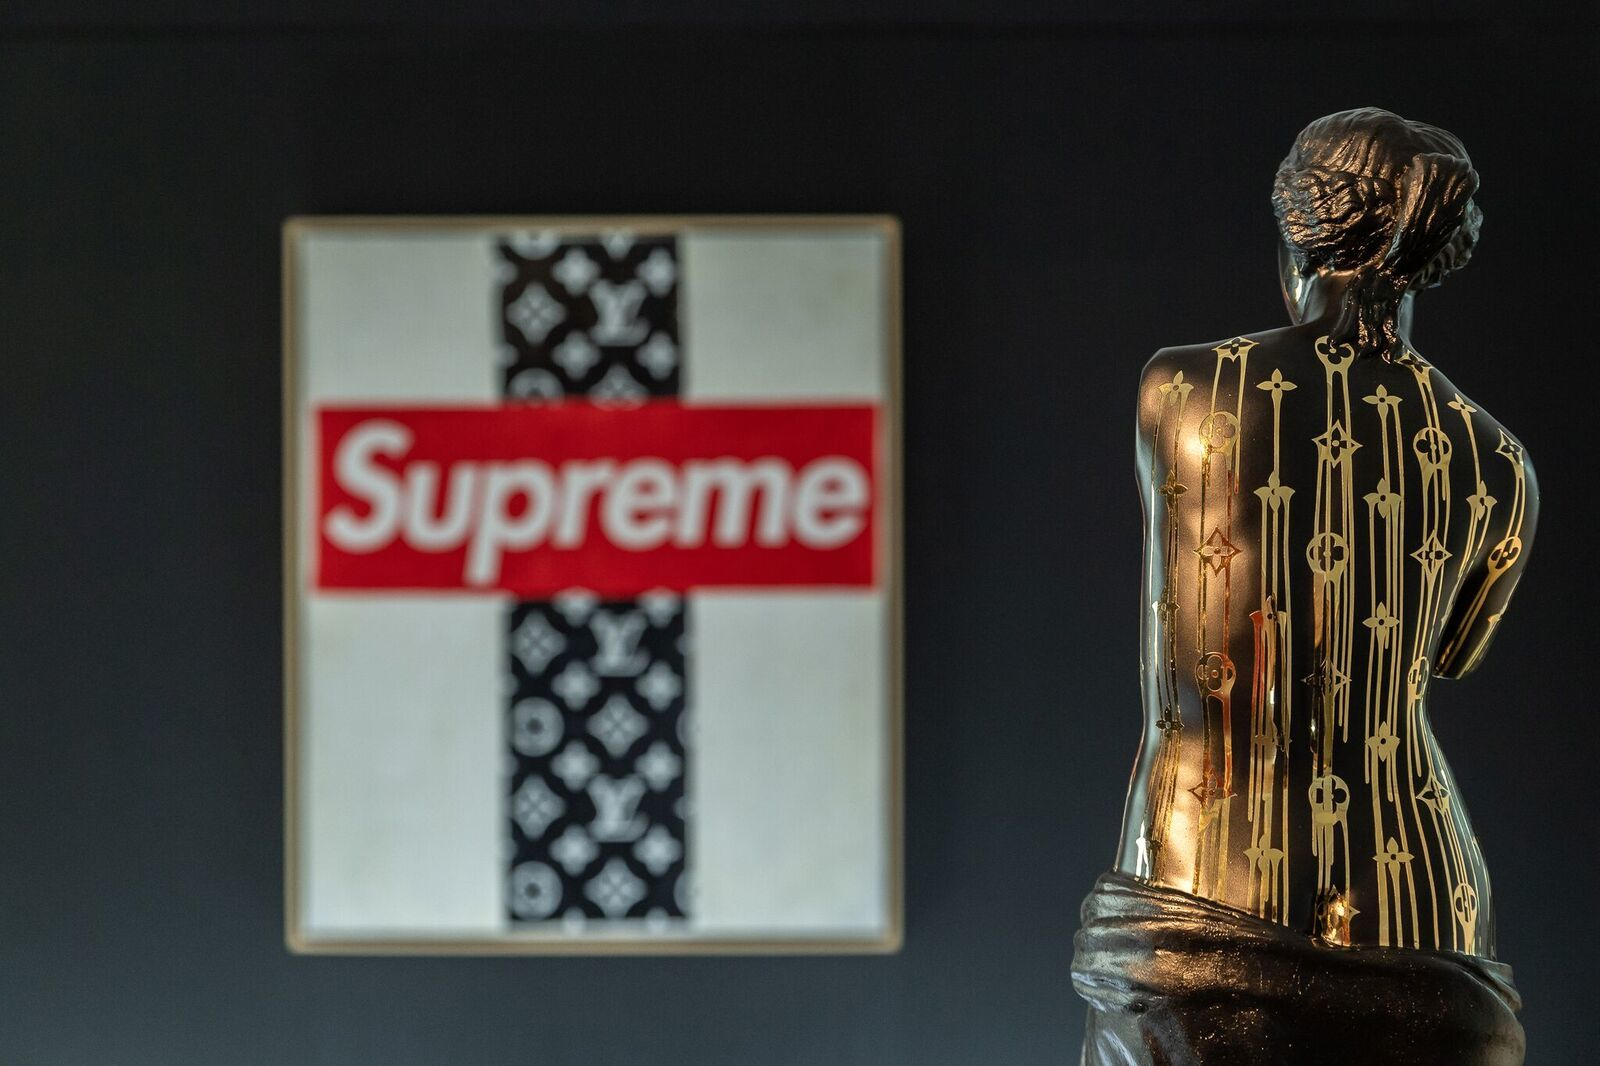 Zevs: Louis Vuitton x Supreme